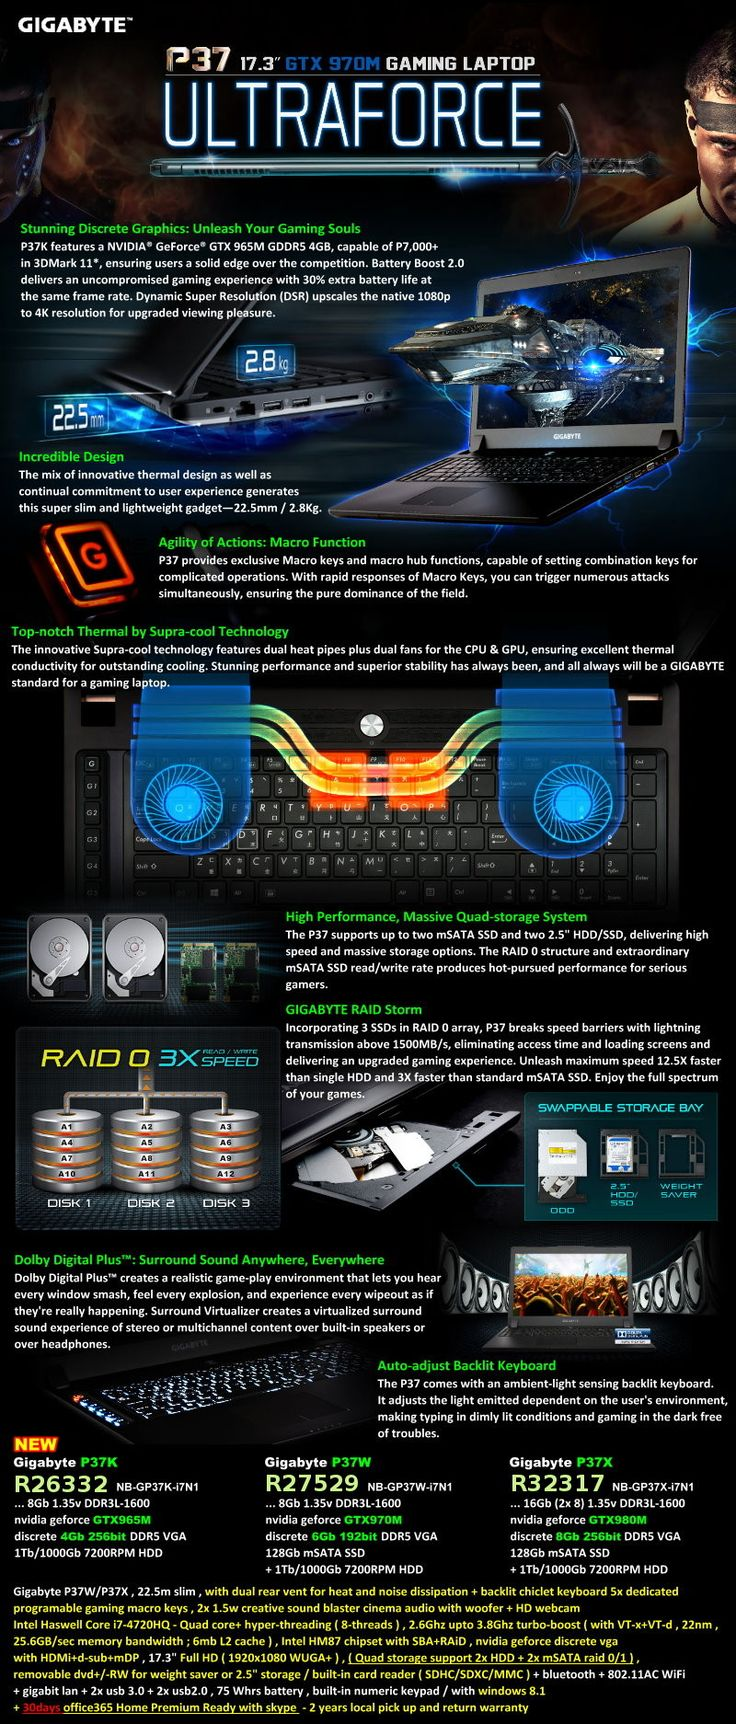 Gigabyte 9WP37W003-ZA-A-001- P37W , 22.5m slim , with dual rear vent for heat and noise dissipation + backlit chiclet keyboard , 5x dedicated programable gaming macro keys , 2x 1.5w creative sound blaster cinema audio with woofer + HD webcam- intel Haswe